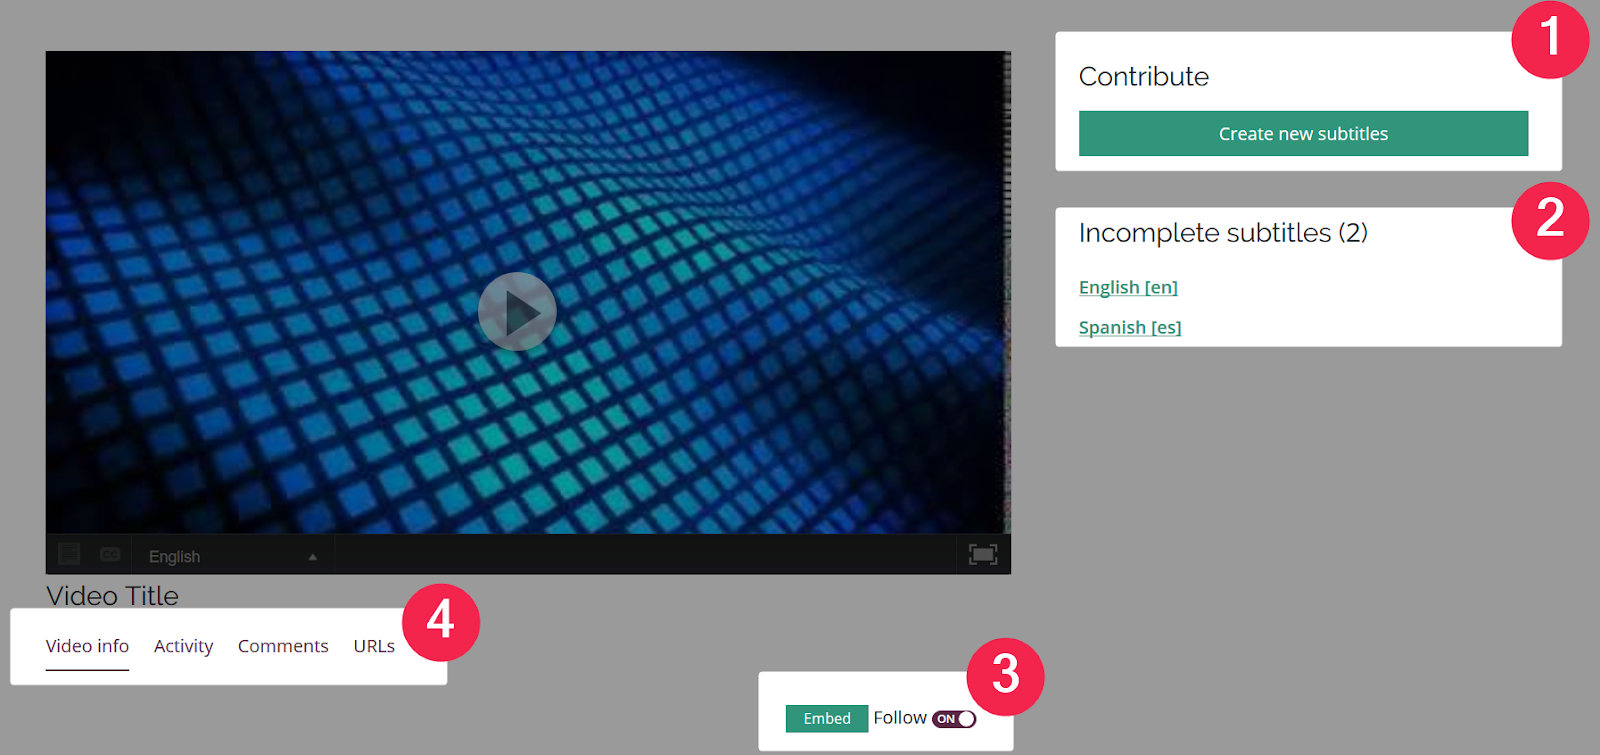 Incomplete subtitles, complete subtitles, embed and follow options, and video details sections highlighted and numbered on the Videos page for a contributor in an Amara team without assignments